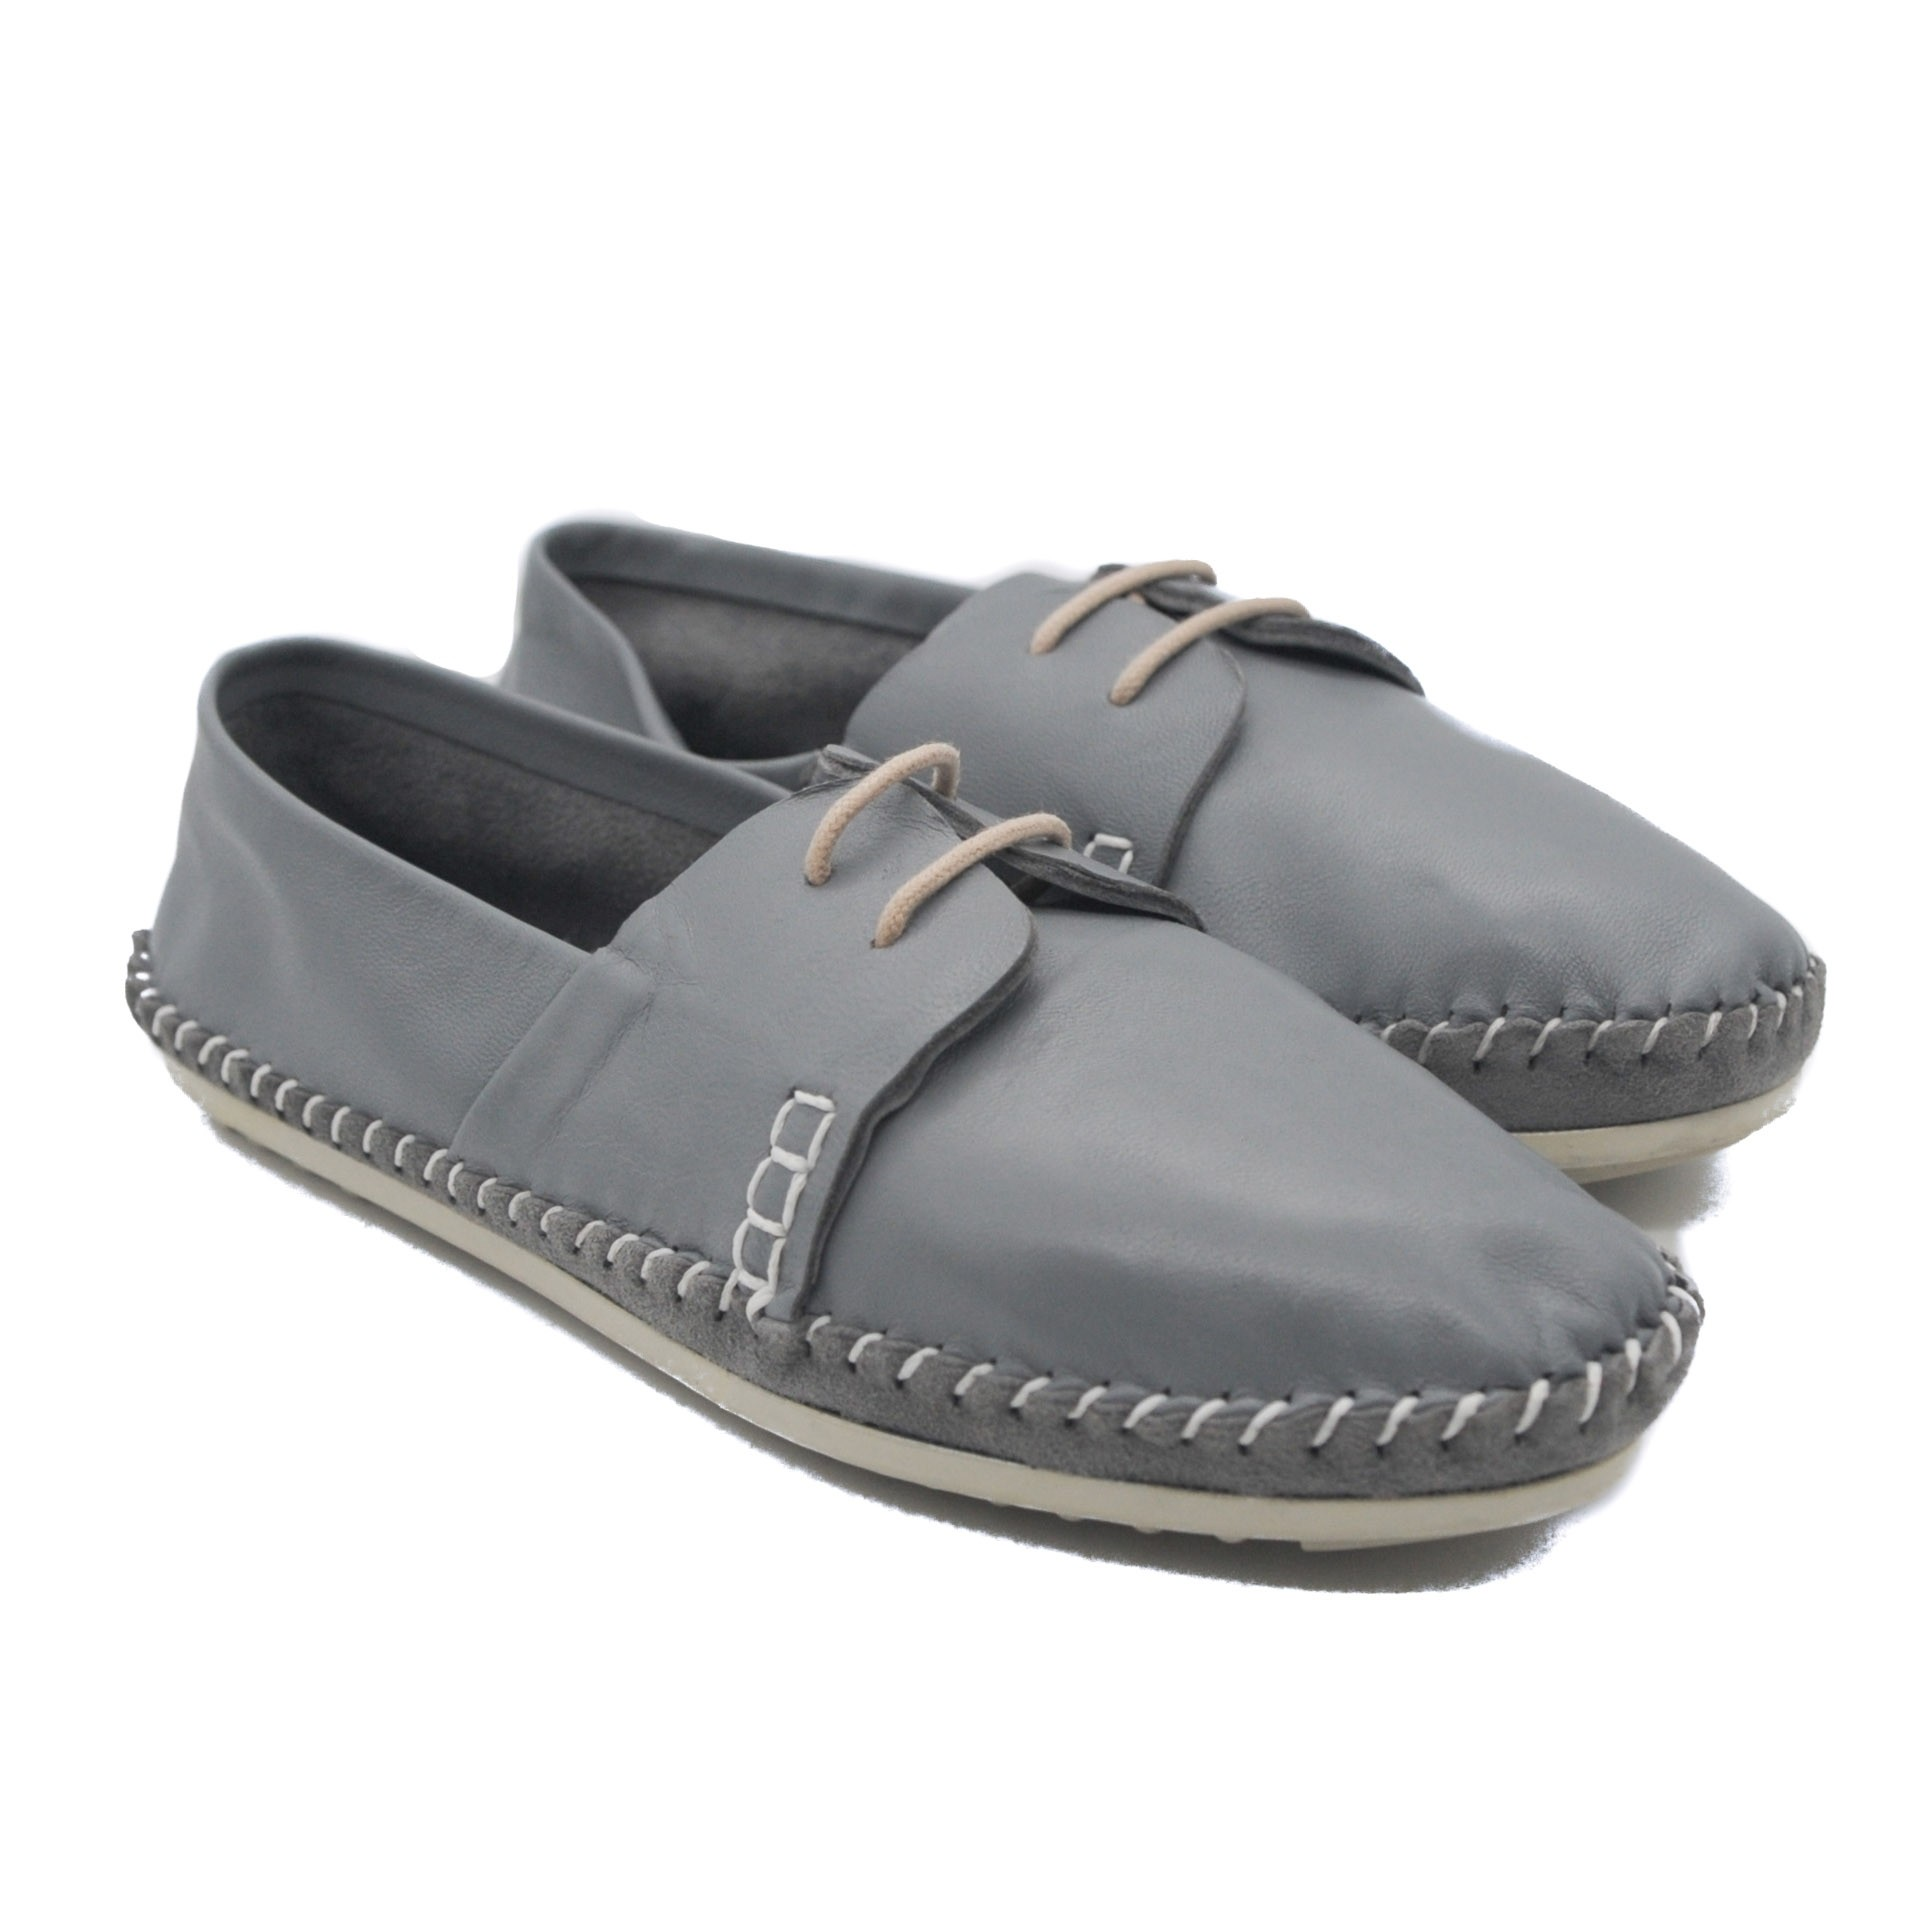 Pegia Art Goya Ladies' Flat Lace Up Shoes in Soft Grey Leather and Detailed Stitching